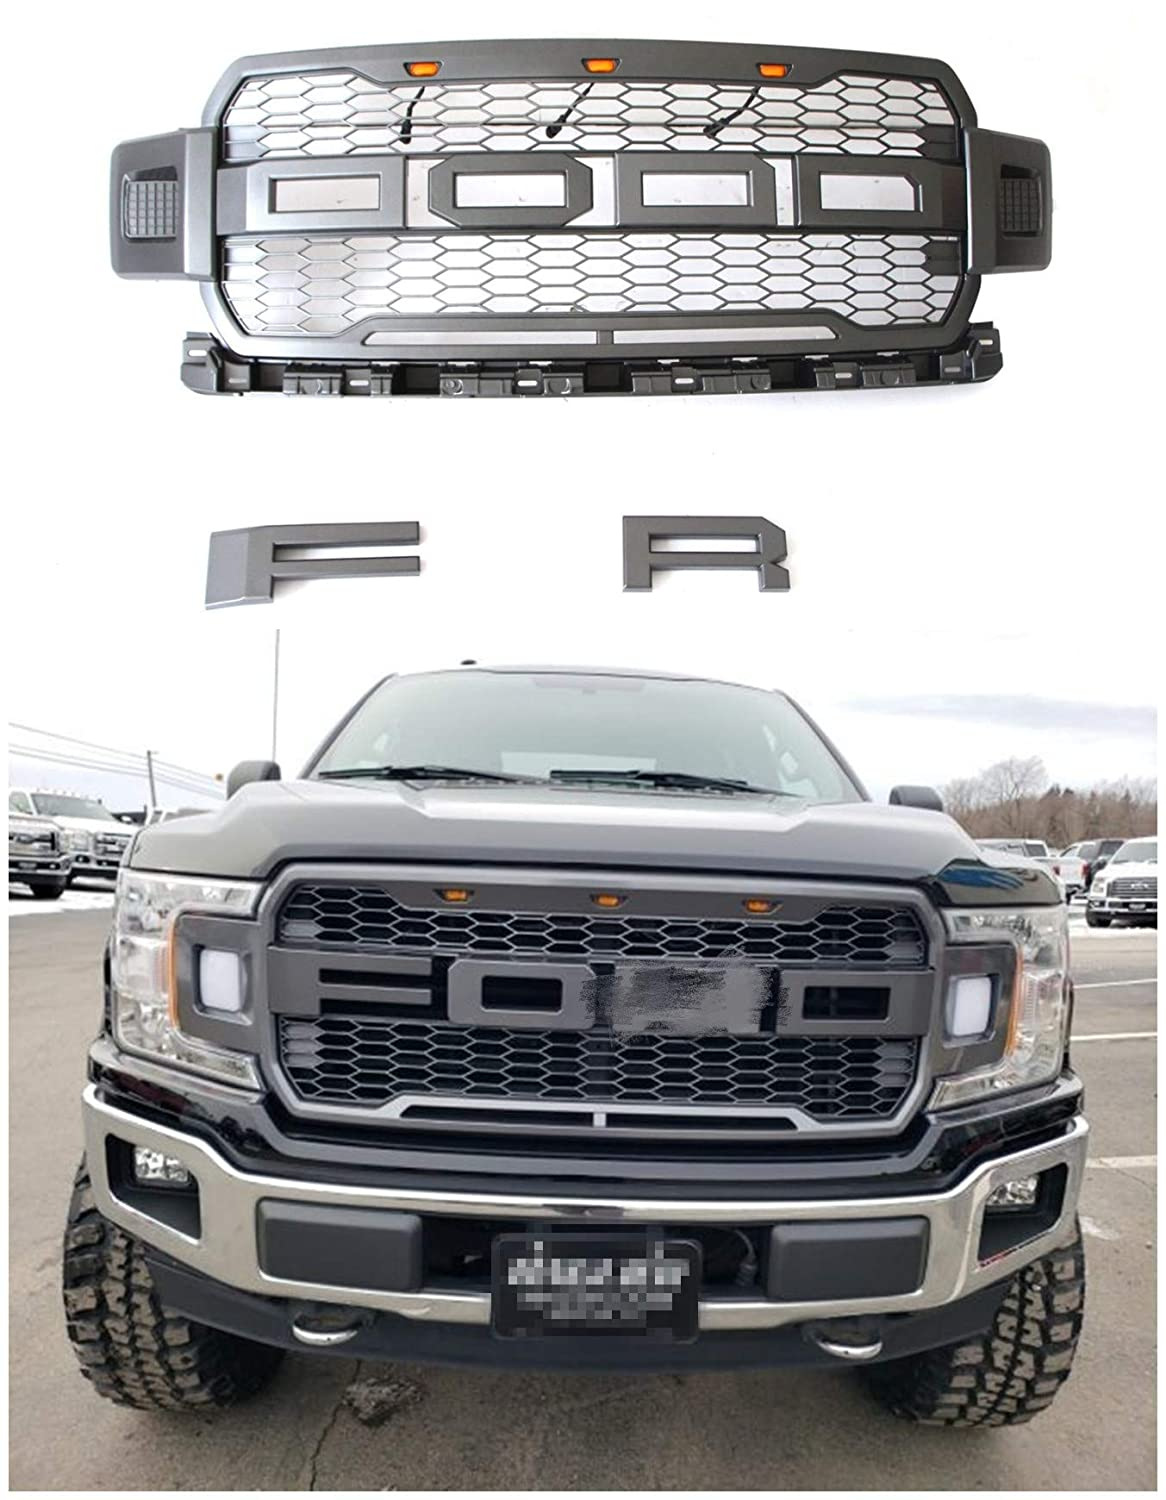 Raptor Style Grille Fits For 2018-2019 Ford F150 Gray Raptor Style on